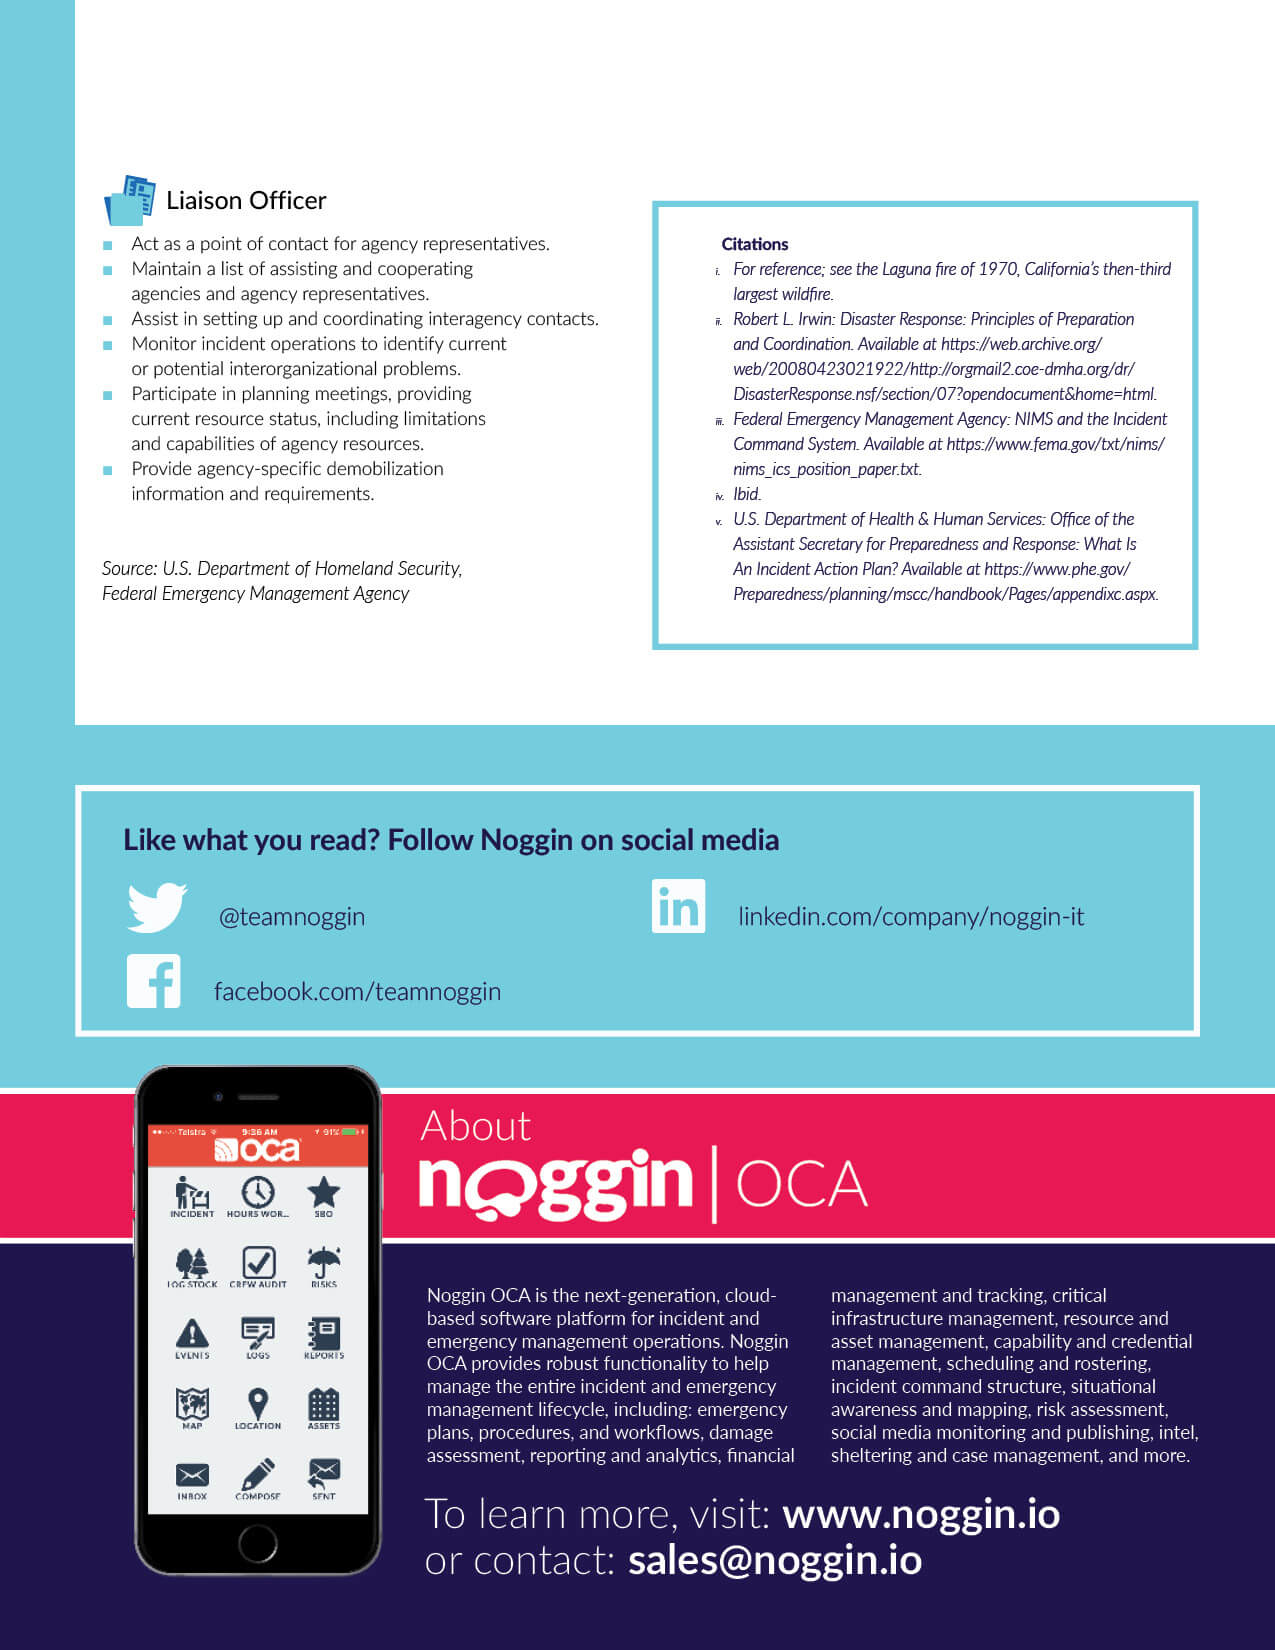 Noggin white paper guide on Understanding the Incident Command System. This was created to drive marketing qualified leads for the Noggin OCA product from the website. Page 10 of 10